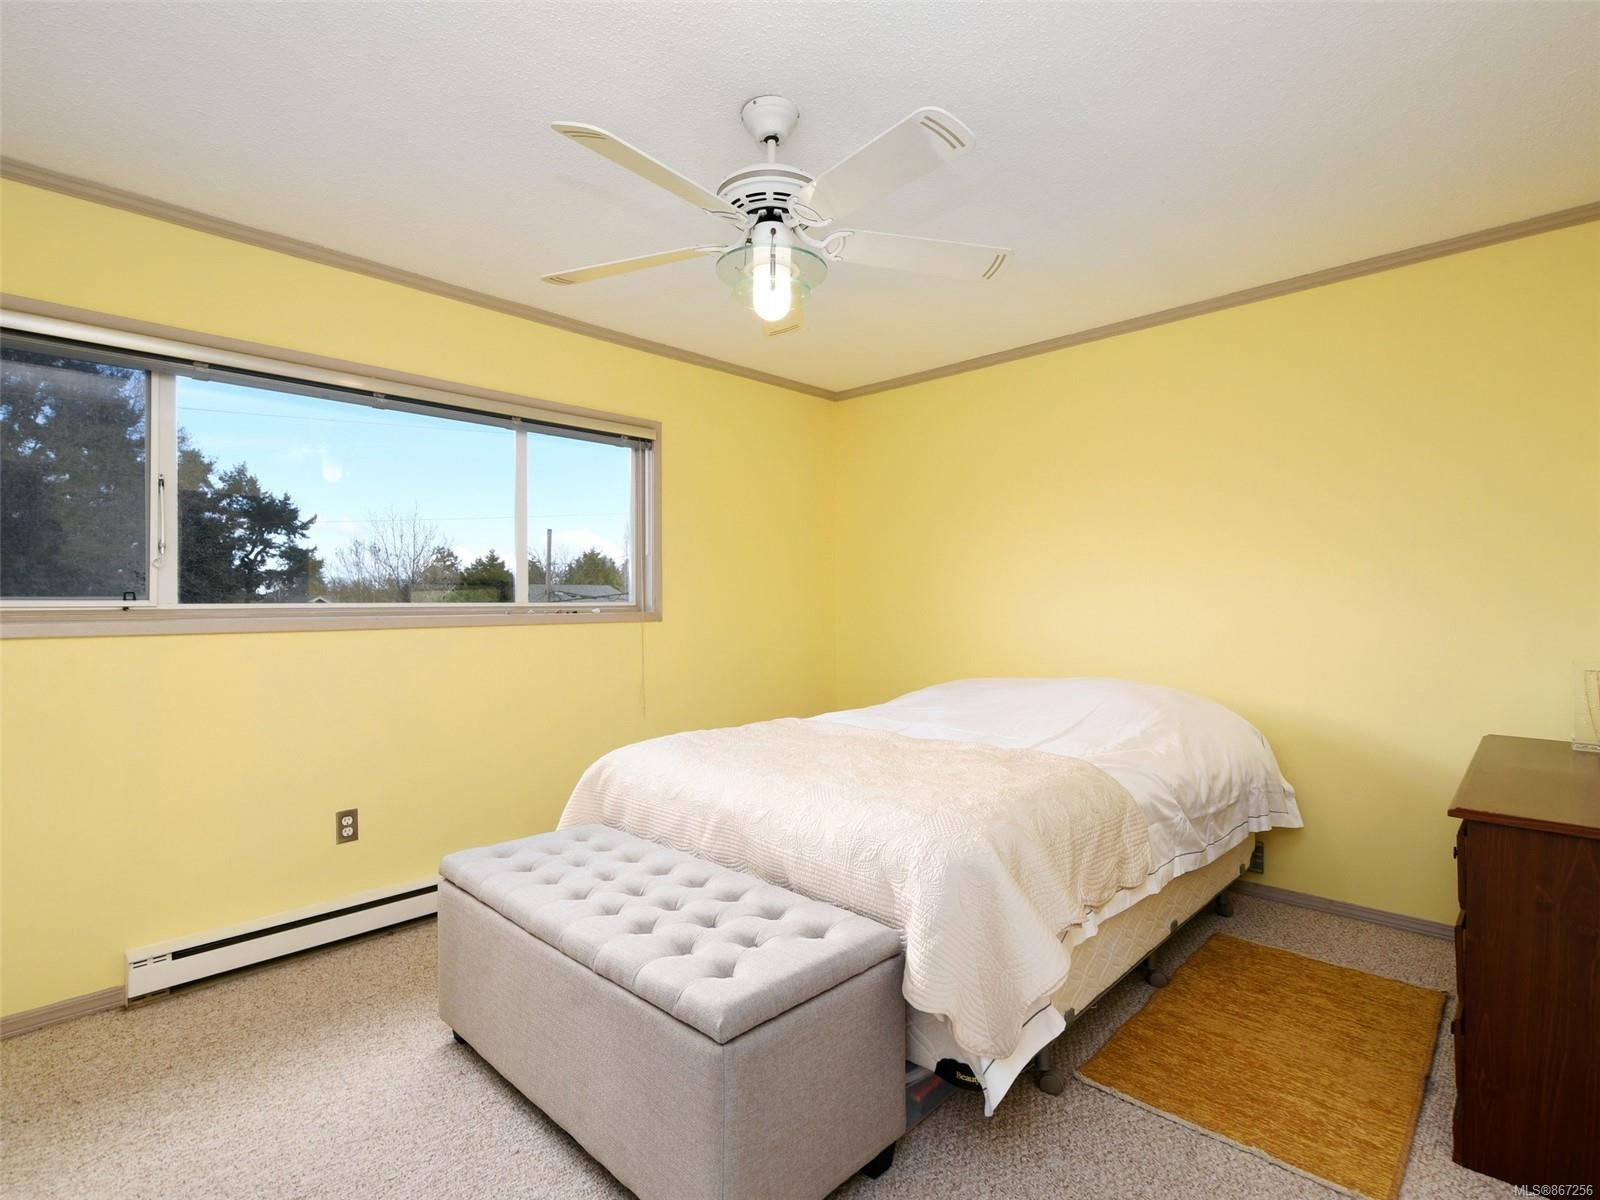 Photo 10: Photos: 5 869 Swan St in : SE Swan Lake Row/Townhouse for sale (Saanich East)  : MLS®# 867256